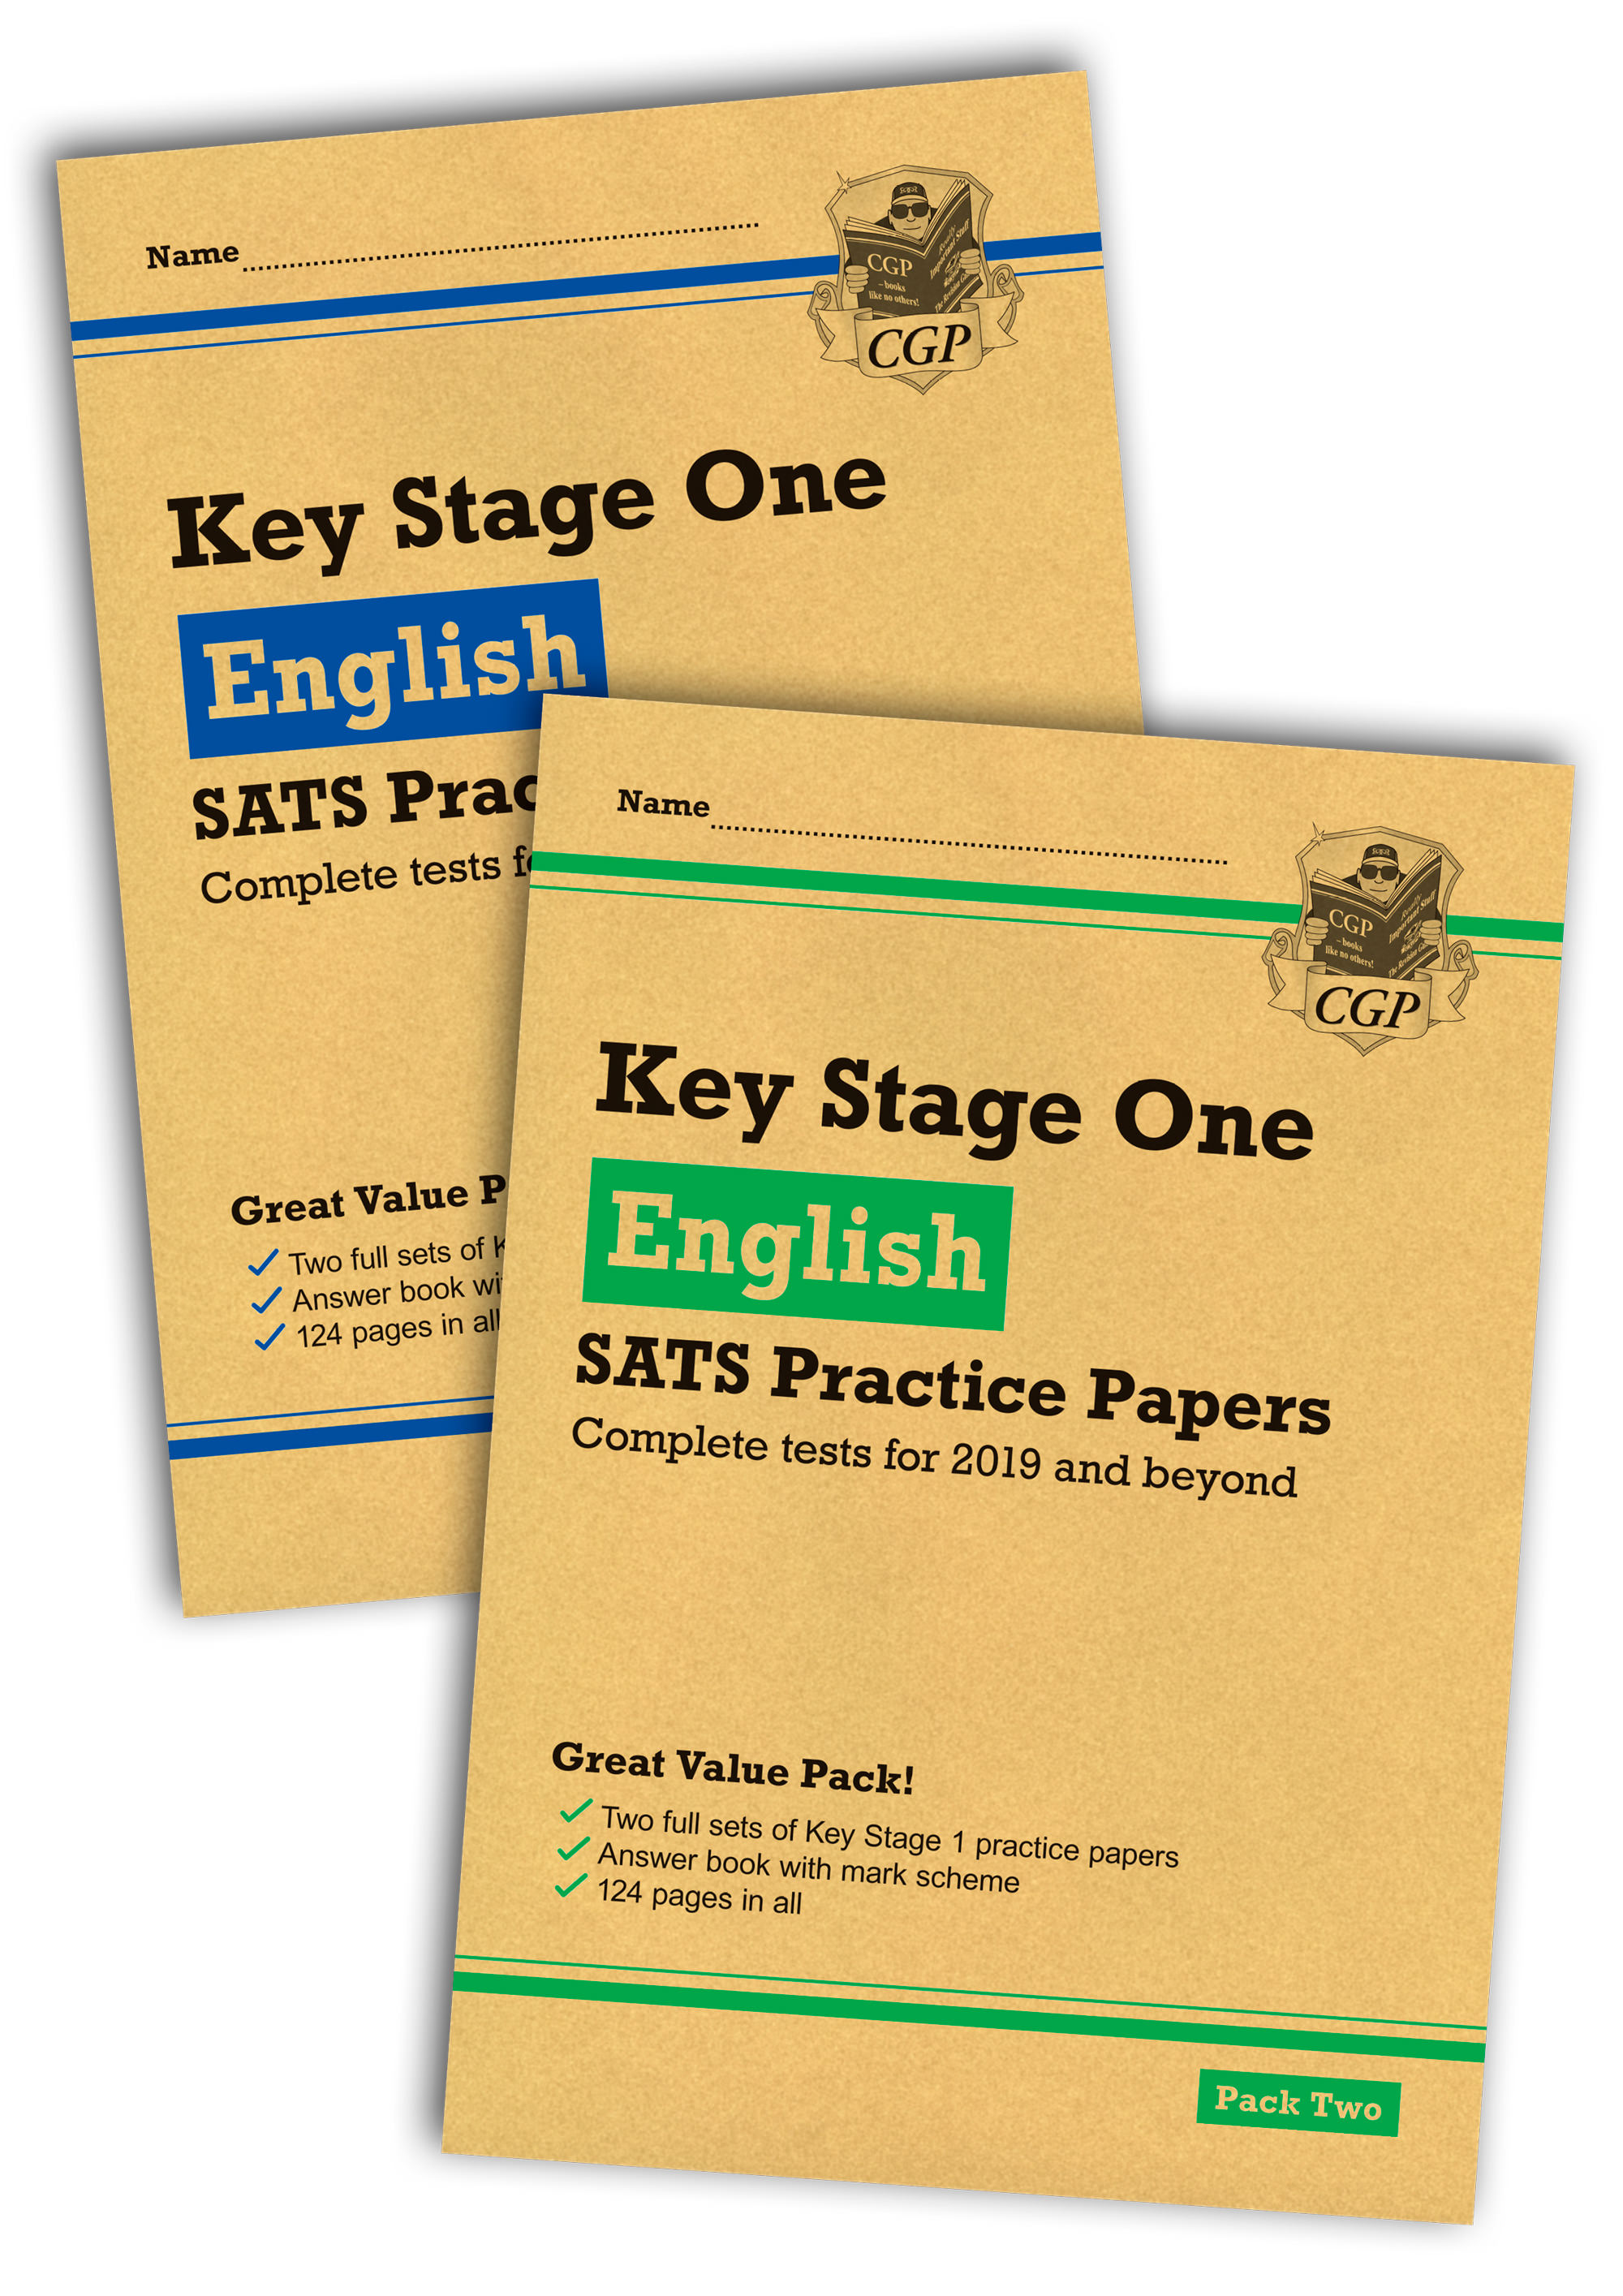 EHB2P13 - New KS1 English SATS Practice Paper Bundle: Pack 1 & 2 (for the 2020 tests)